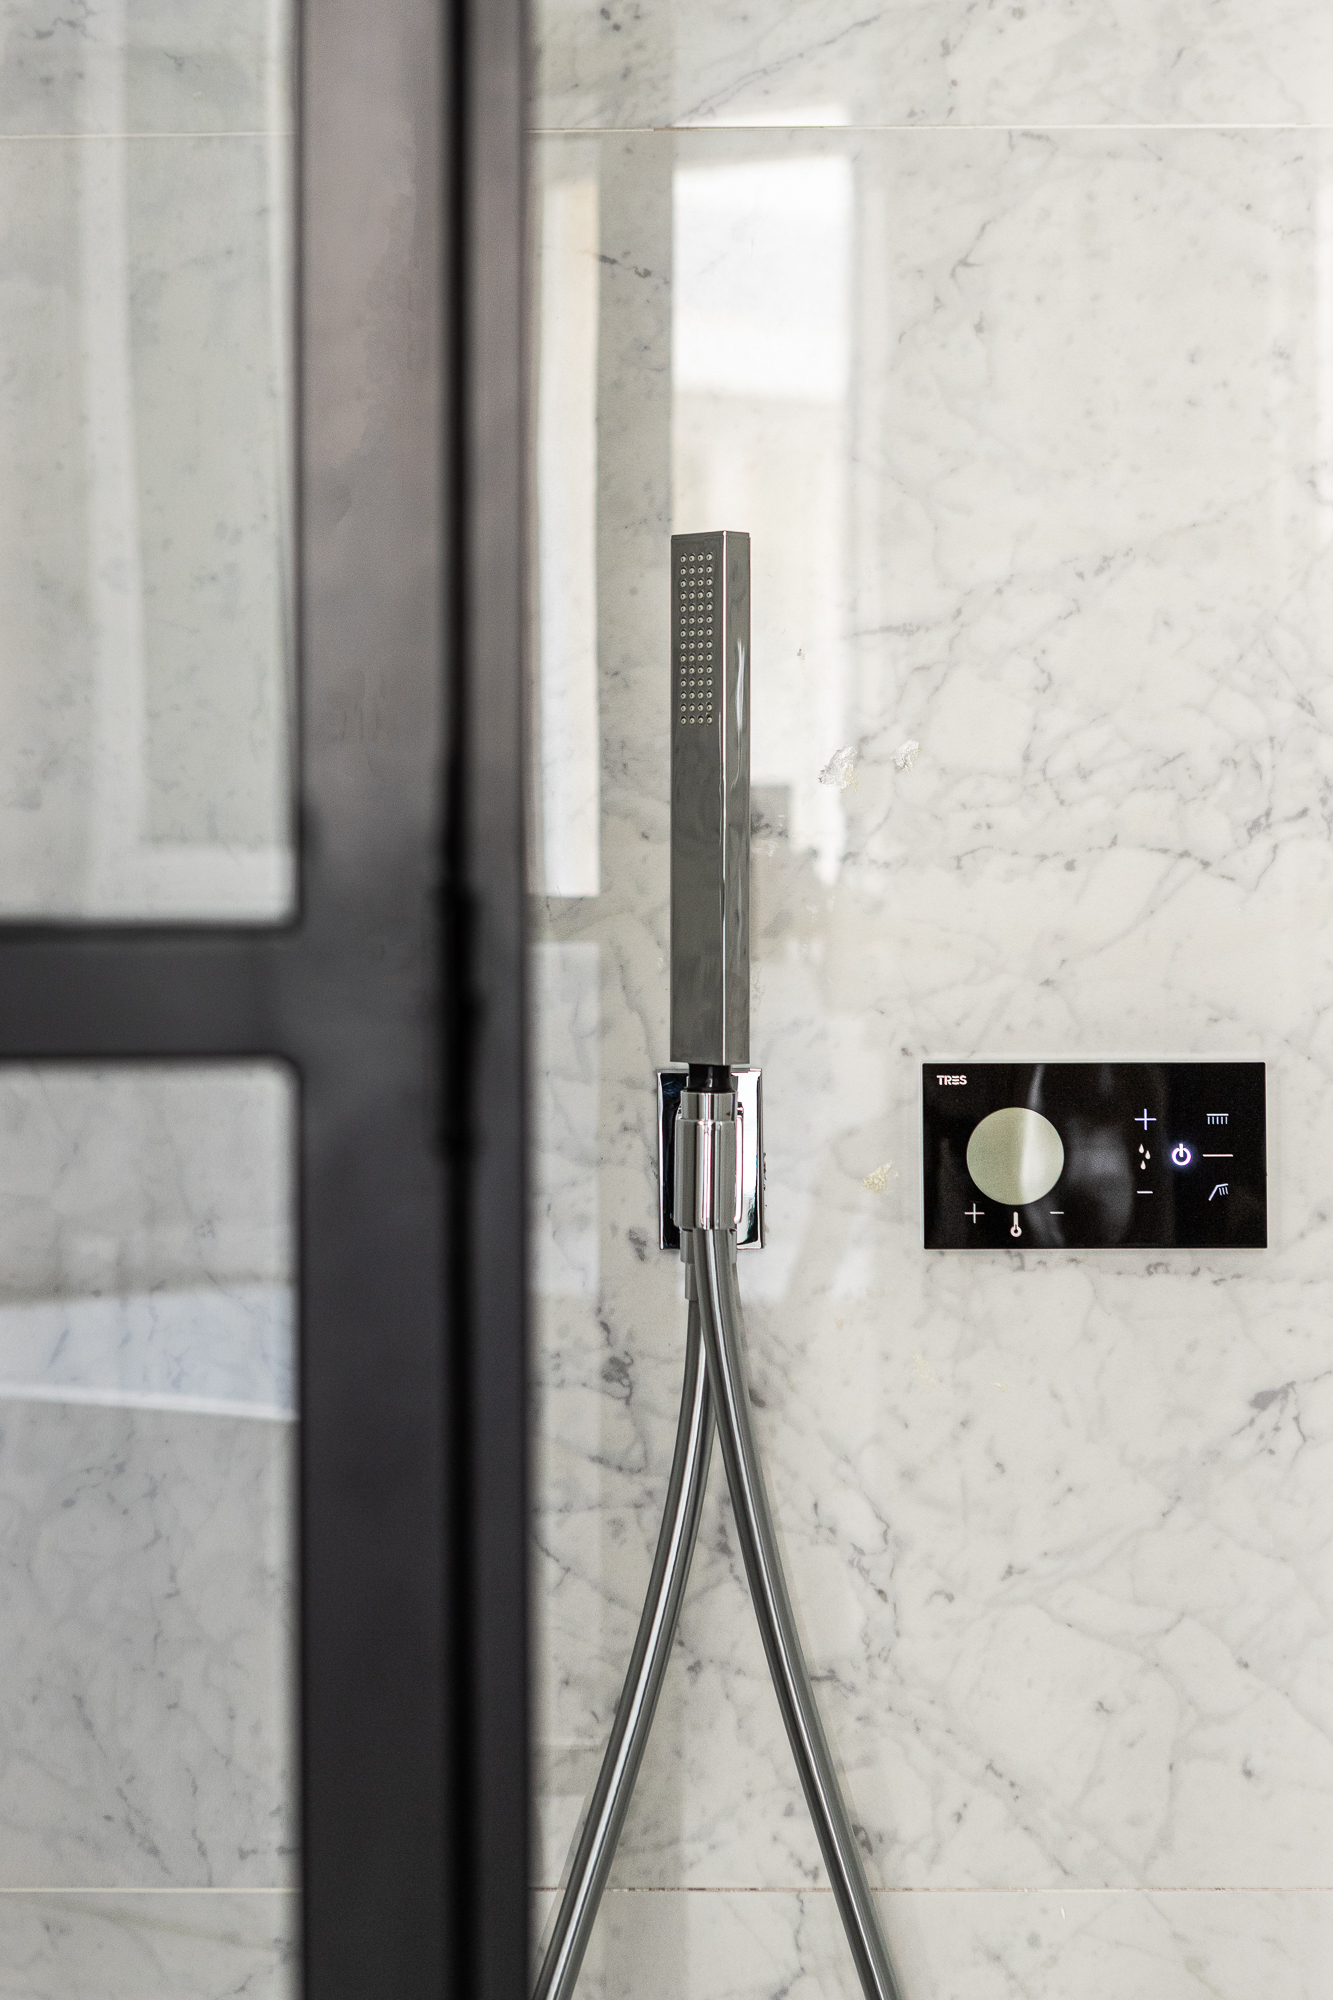 Nordic Standard interior design showers